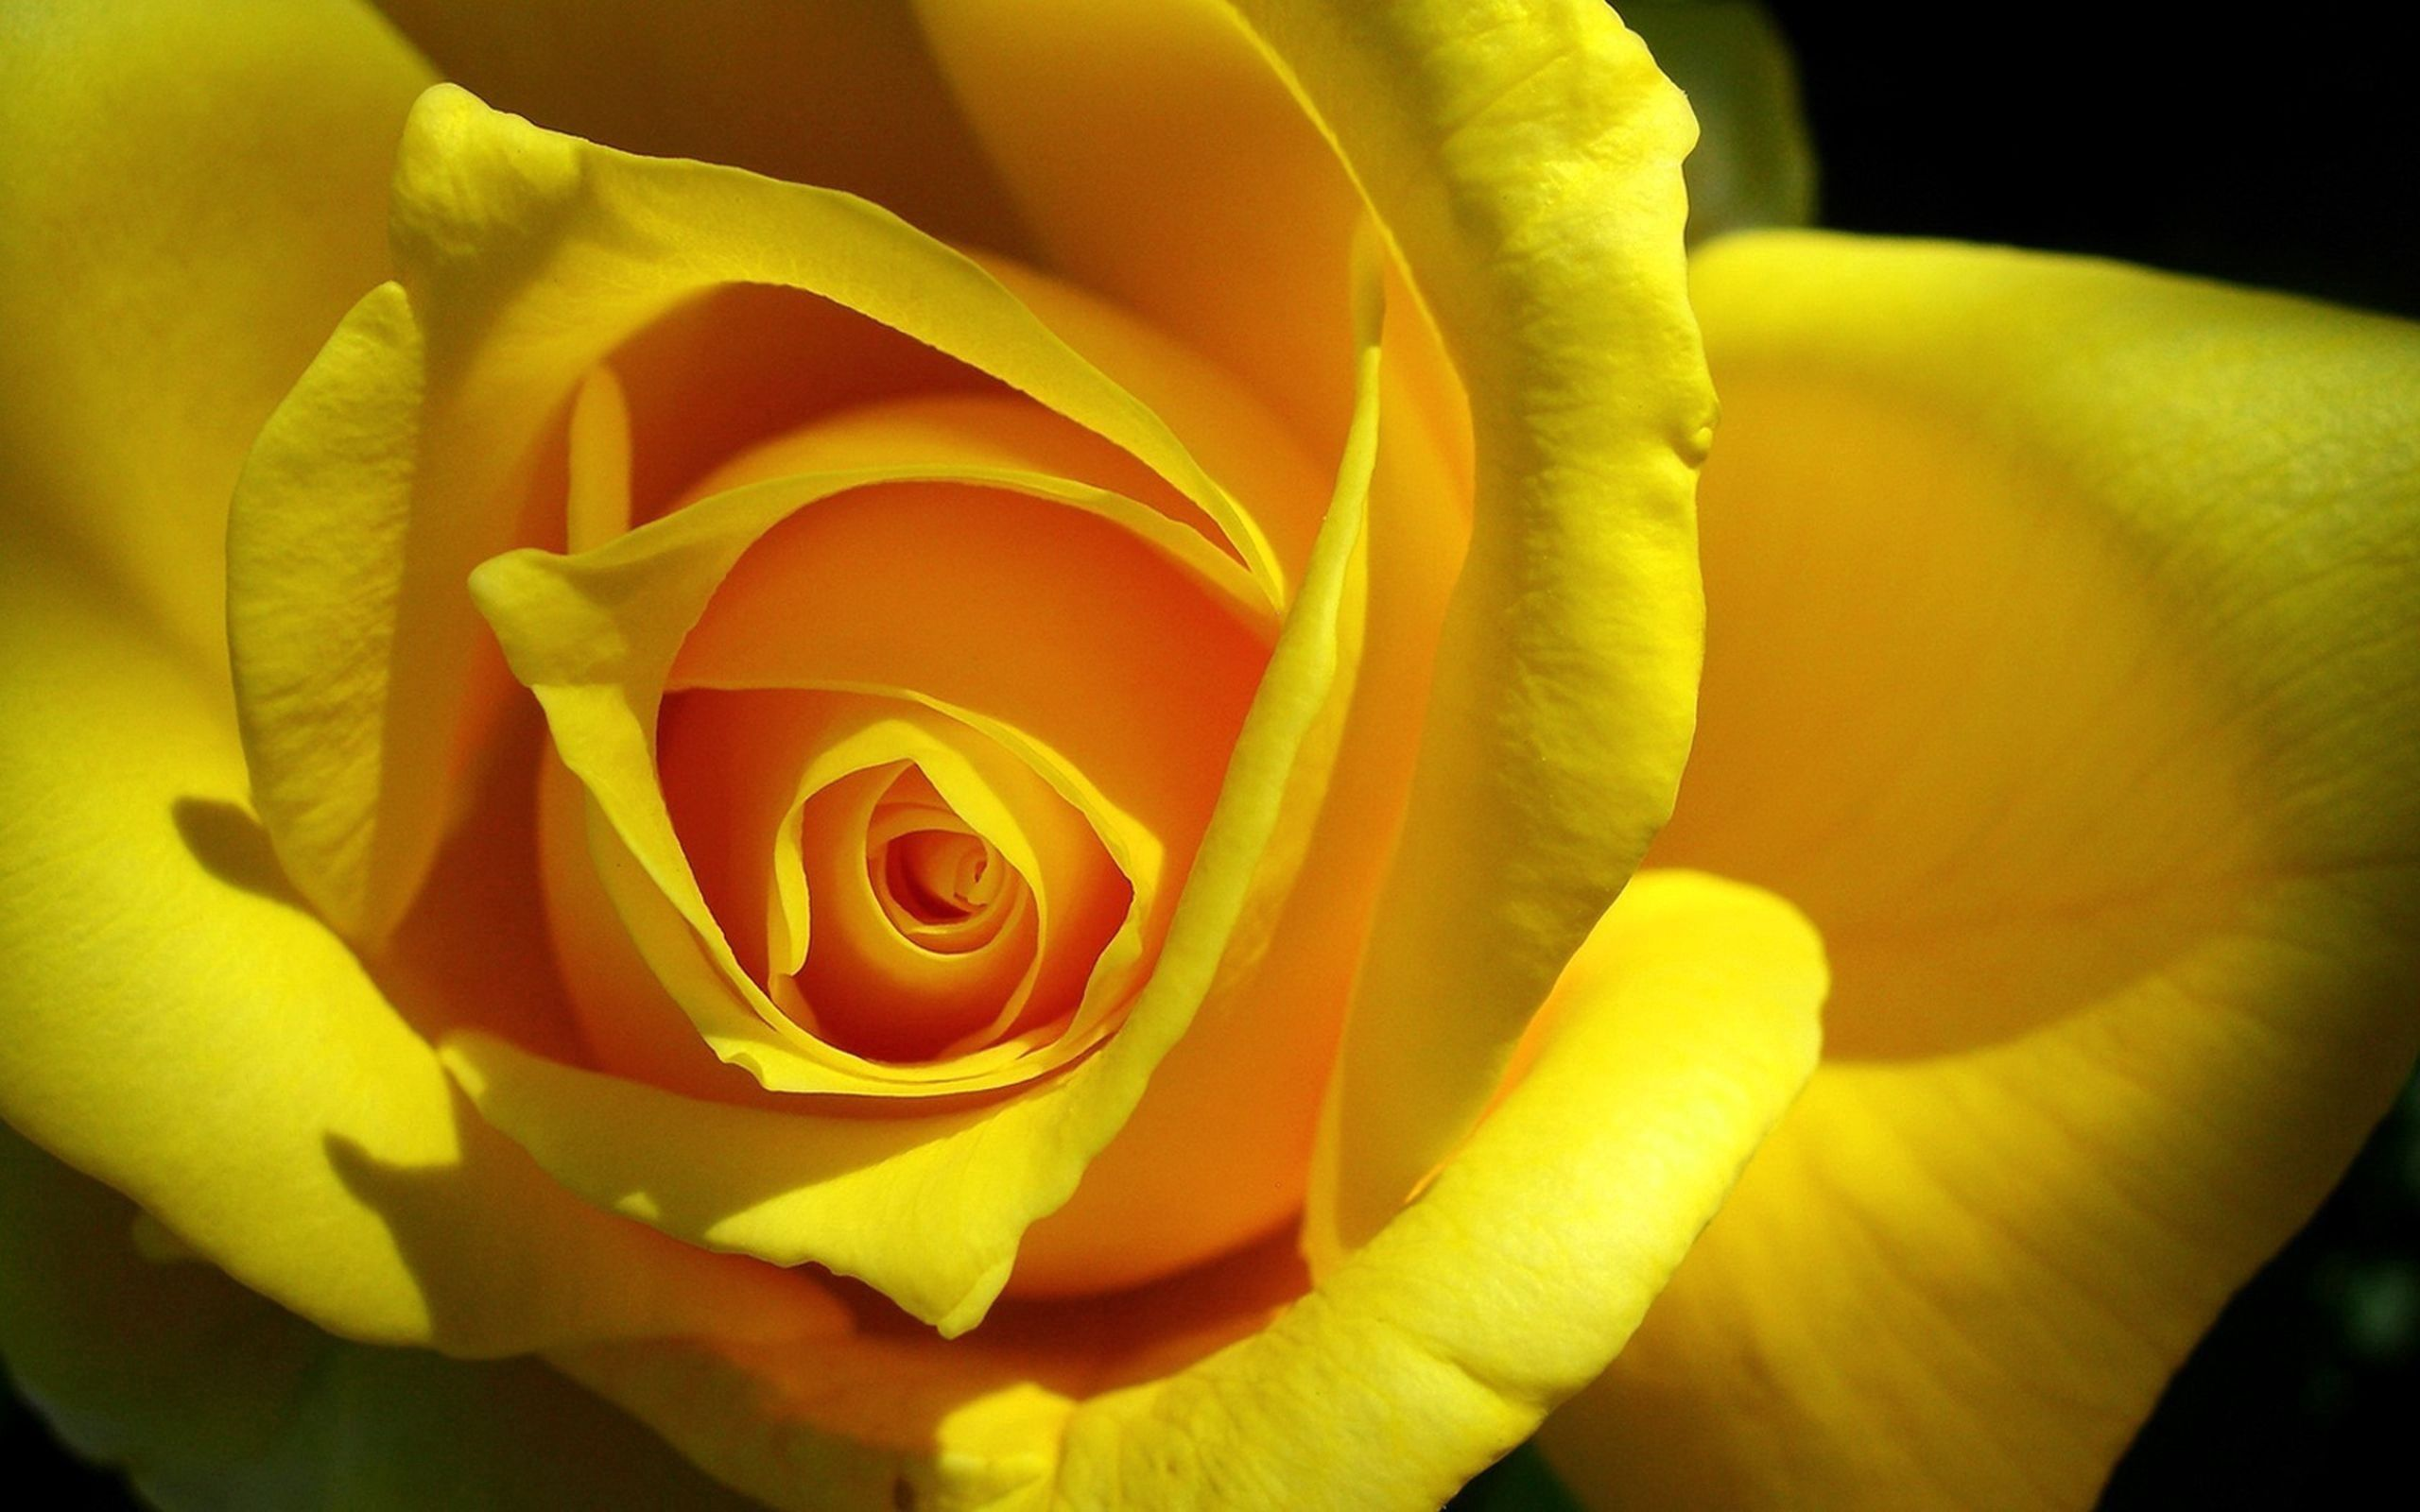 114927 Screensavers and Wallpapers Petals for phone. Download Macro, Rose Flower, Rose, Petals, Bud pictures for free